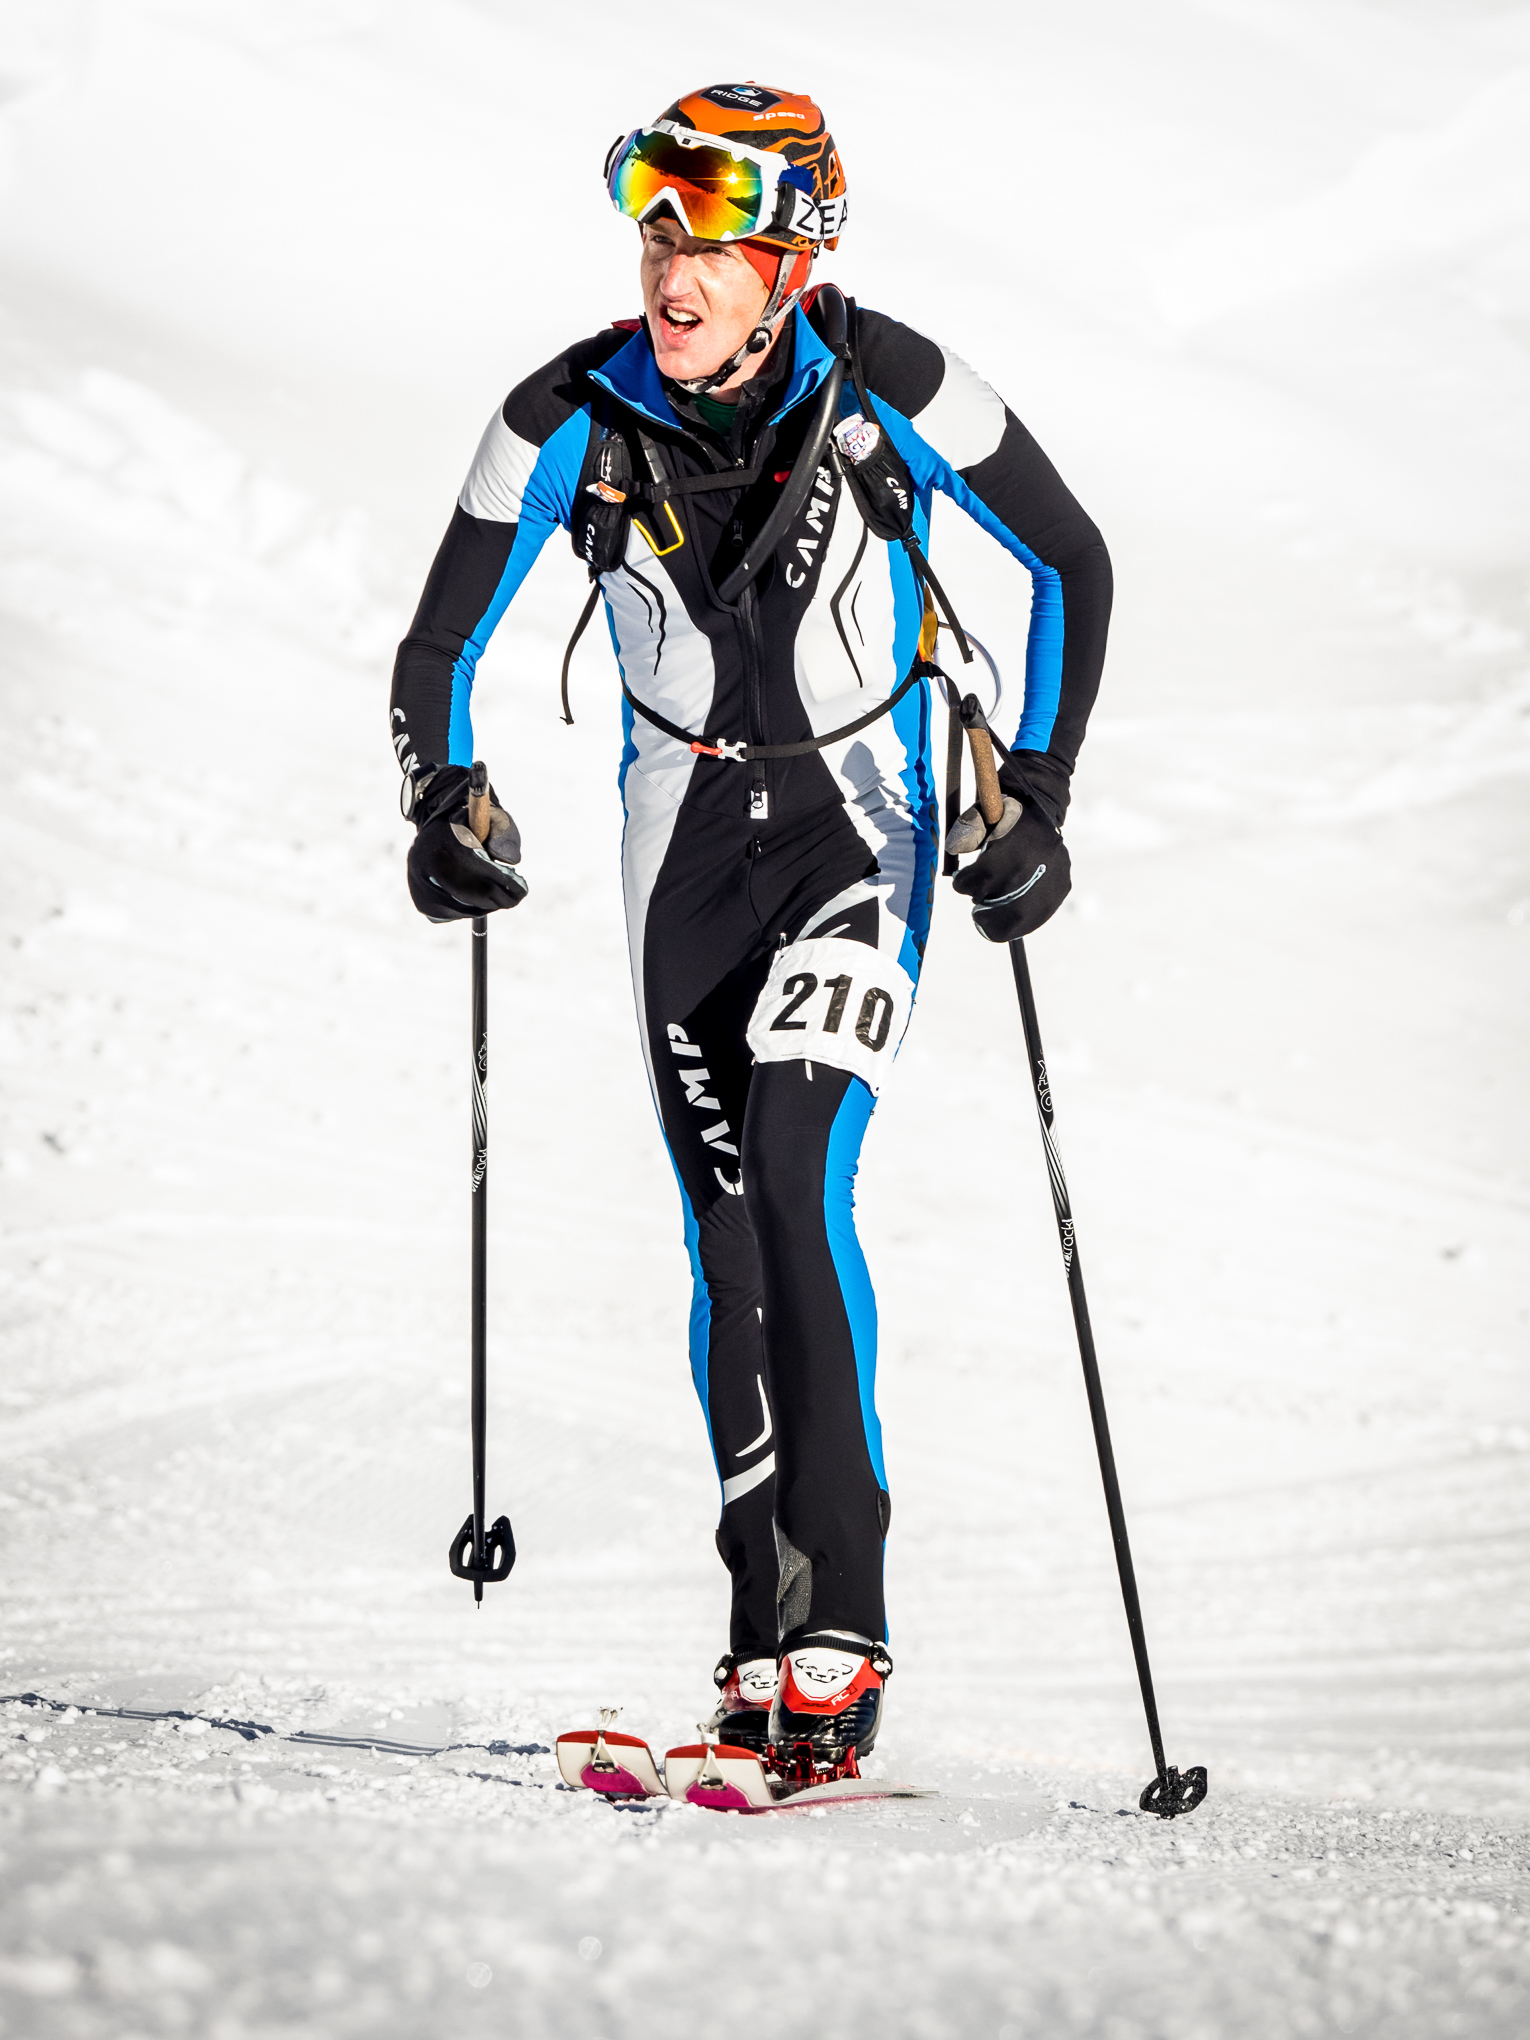 Skimo-racing-RIDGE-Academy-21.jpg